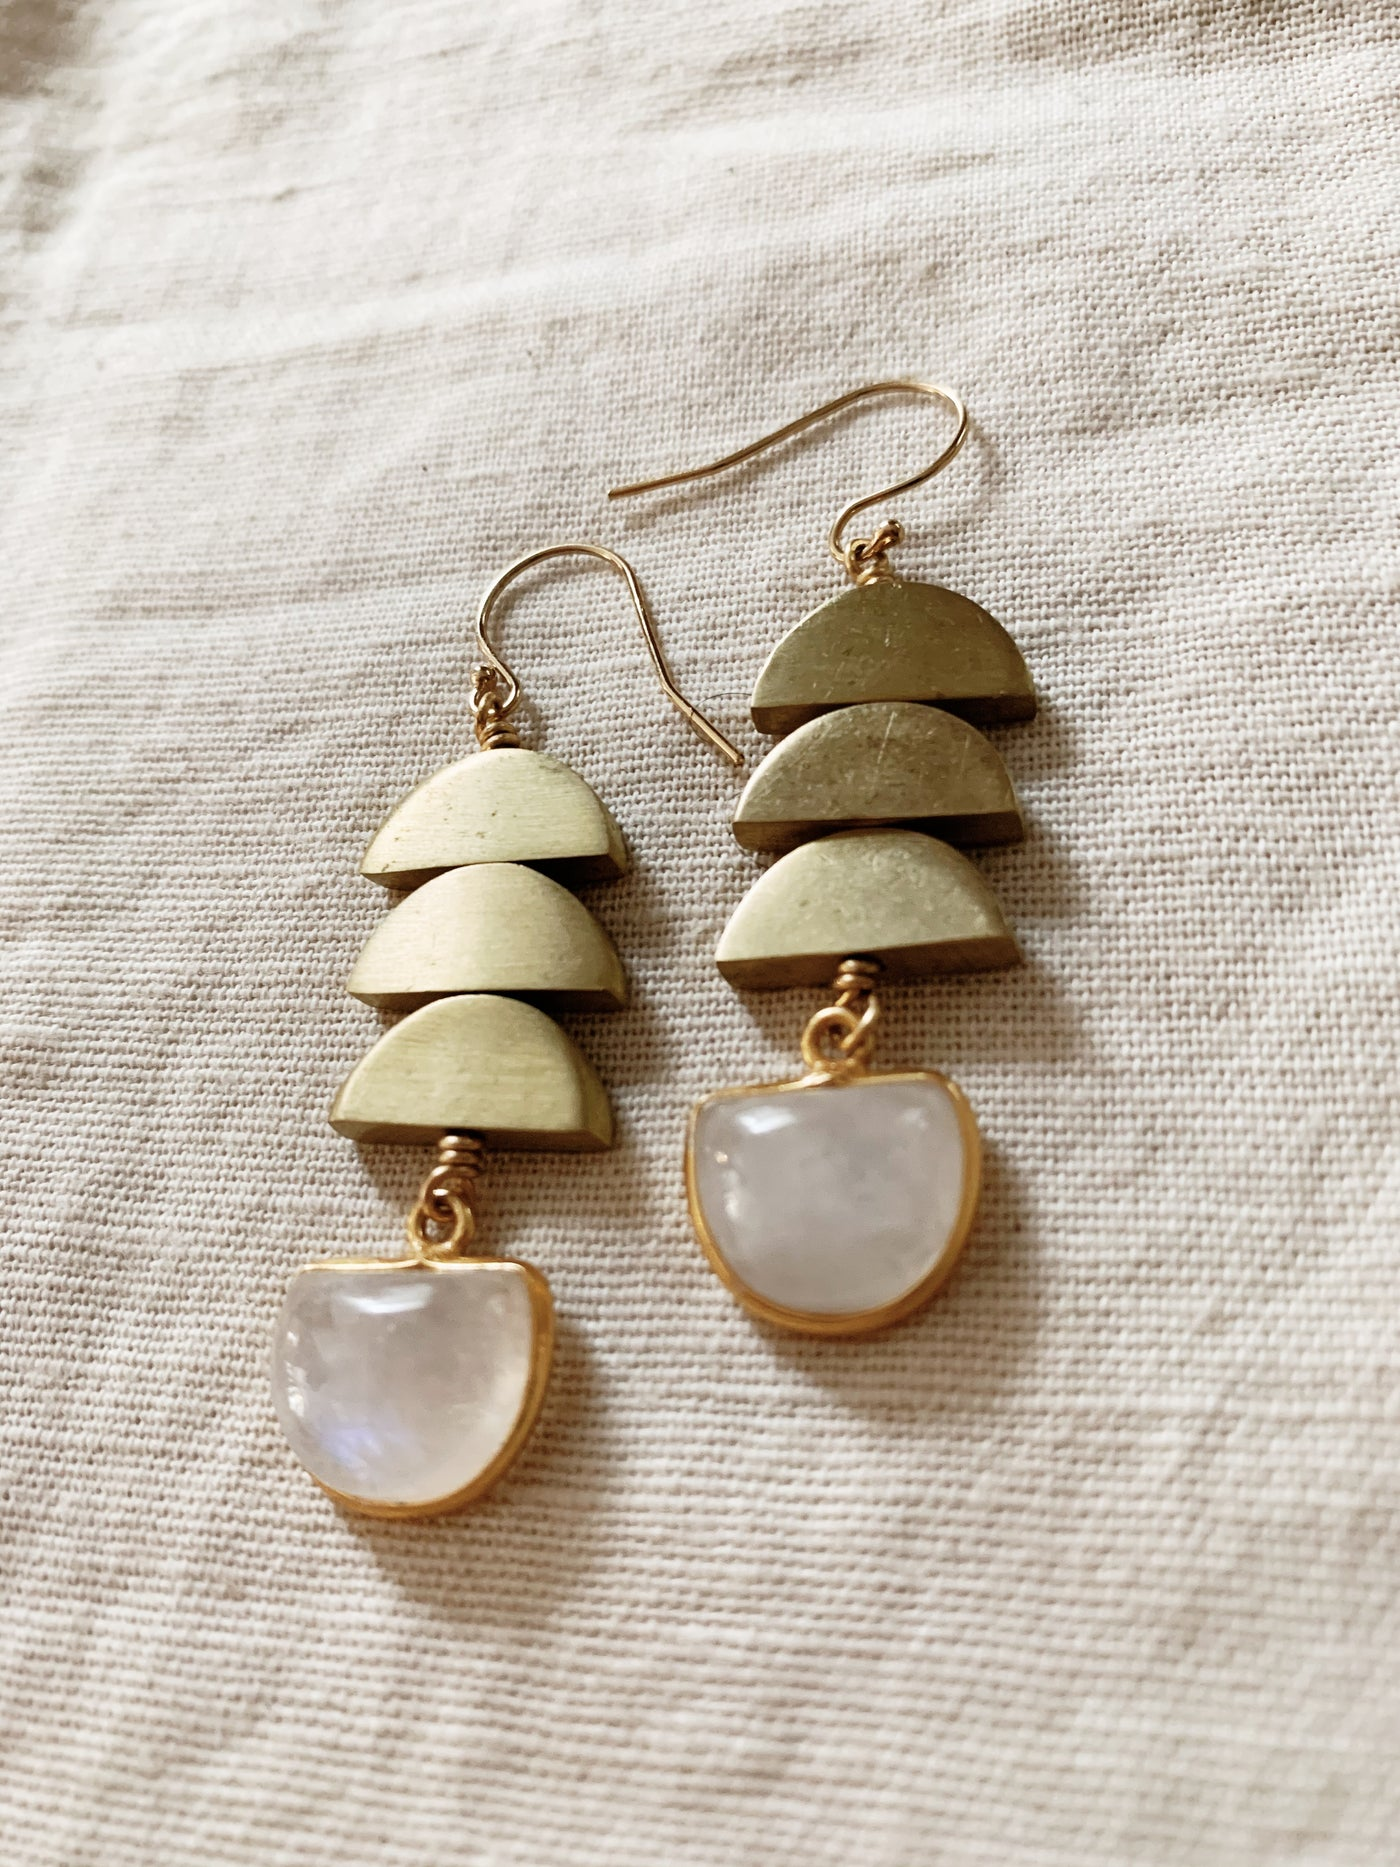 Larissa Loden: Moonstone + Moons Earrings